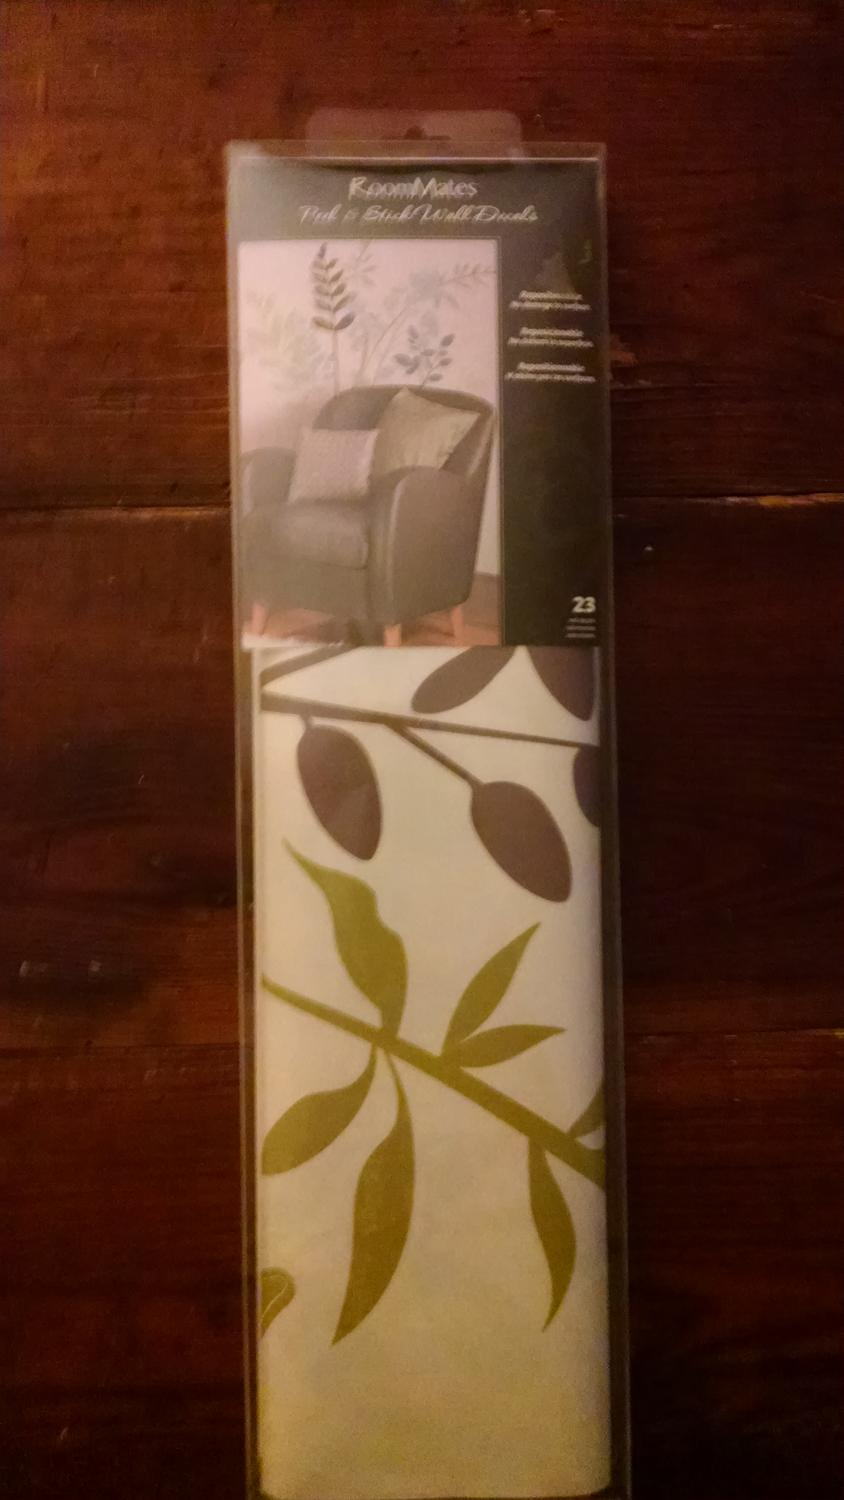 Roommates Peel Stick Wall Decals Brand New Price At Ac Moore 2499 Asking 1000